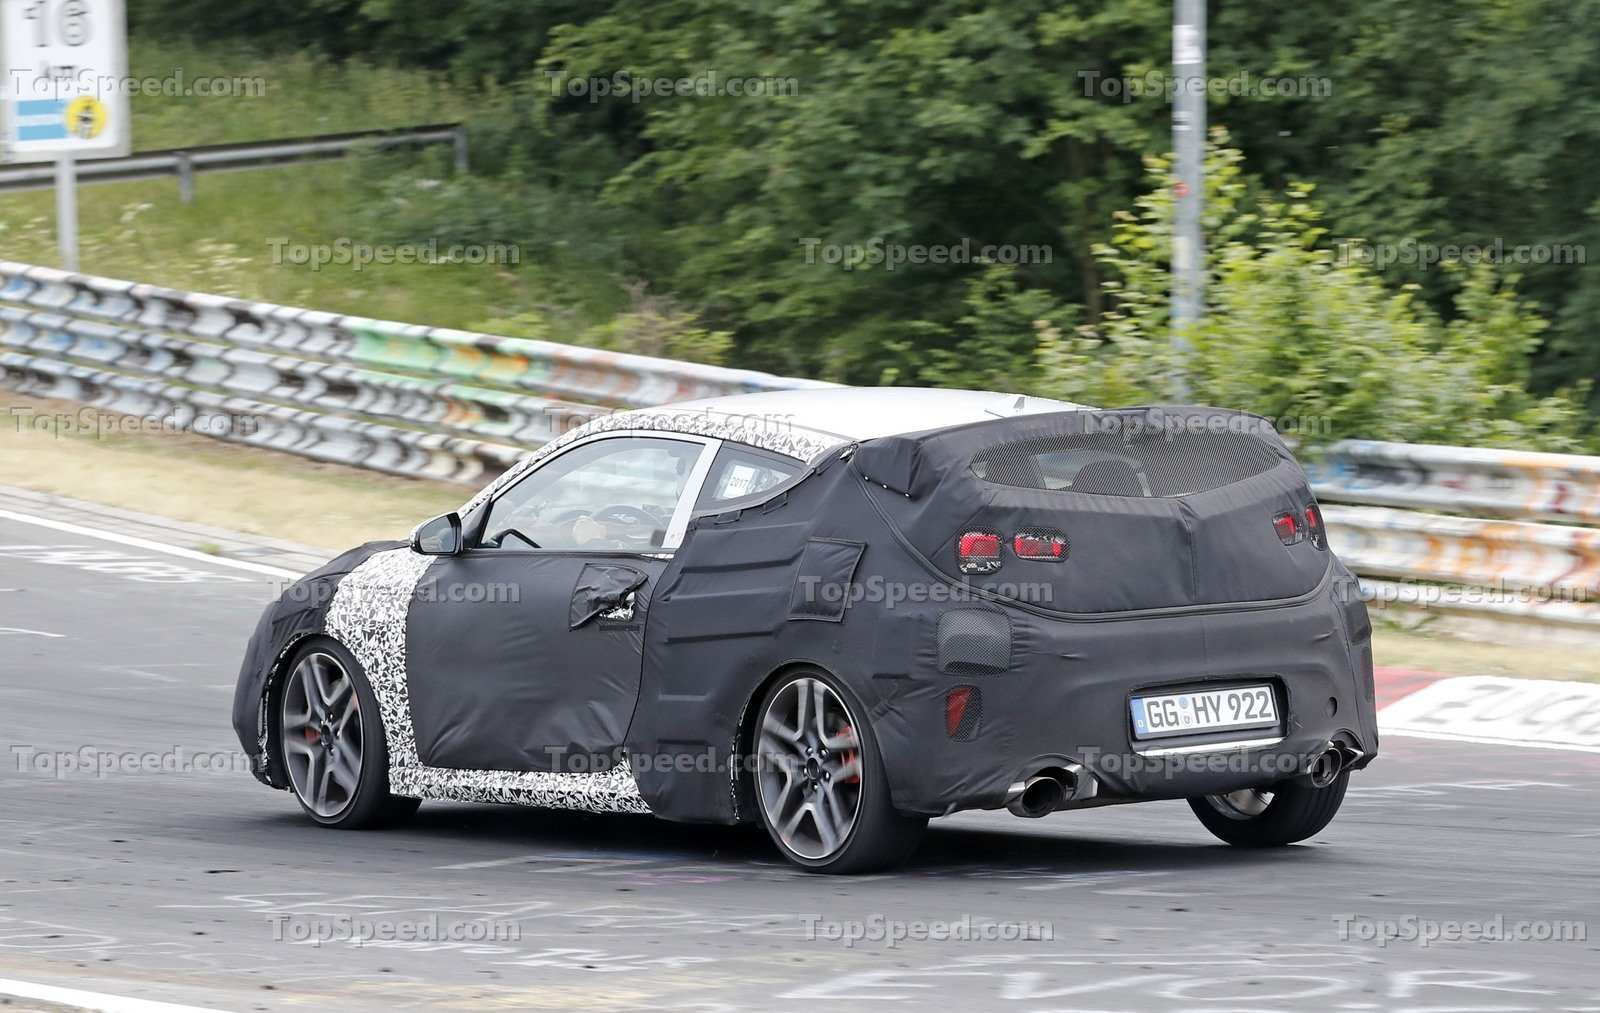 Hyundai Veloster N also Hyundai Veloster Side Pictures X together with Hyundai Veloster N Spy further Hyundai Santa Fe furthermore Hyundai Santa Fe Front Left. on 2017 hyundai veloster release date